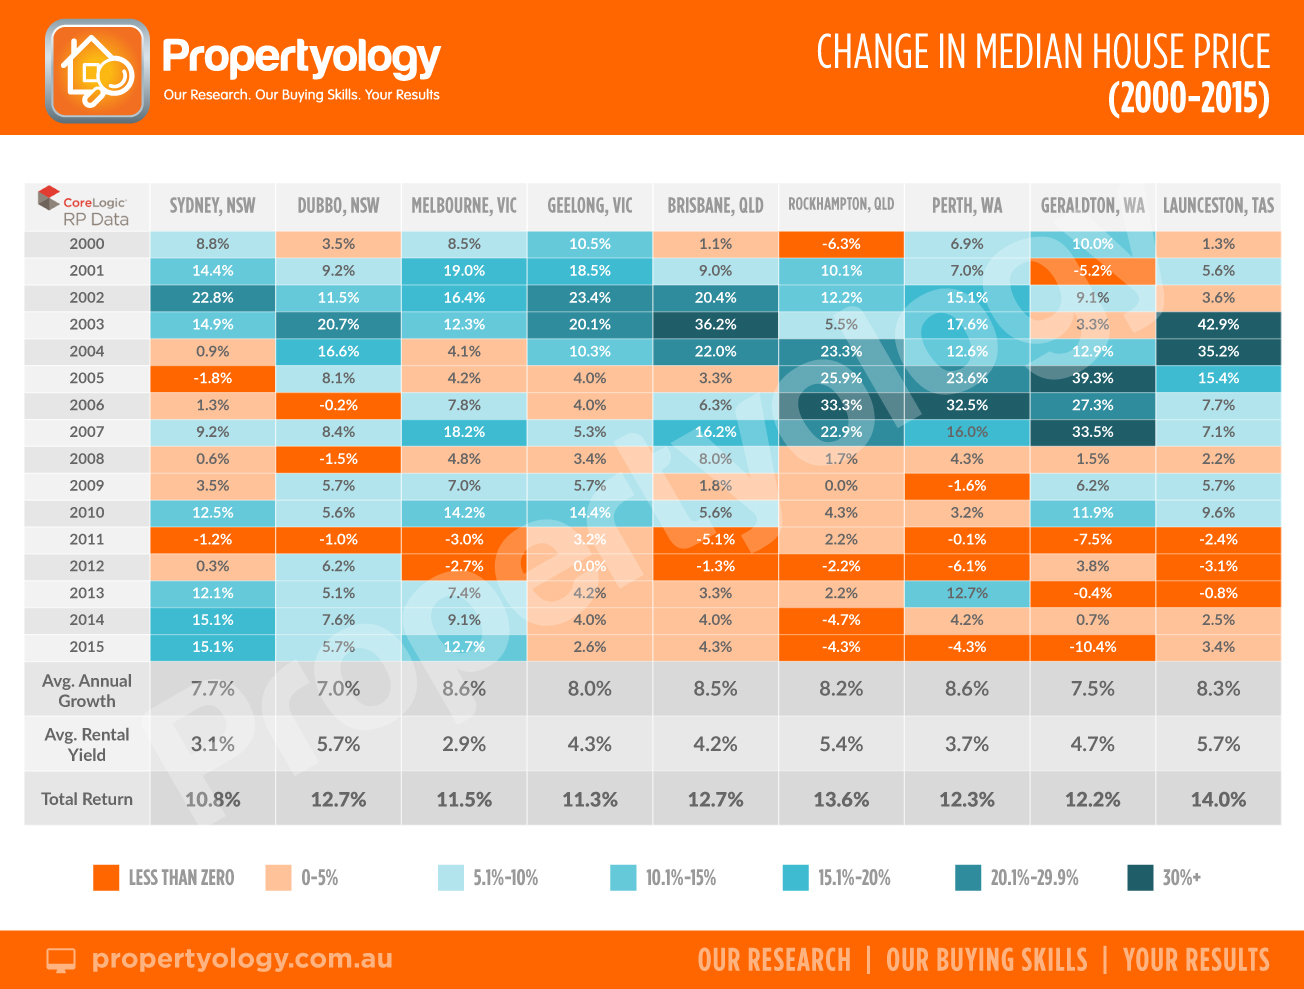 MedianValues_Comparison_2000-2015-Propertyology